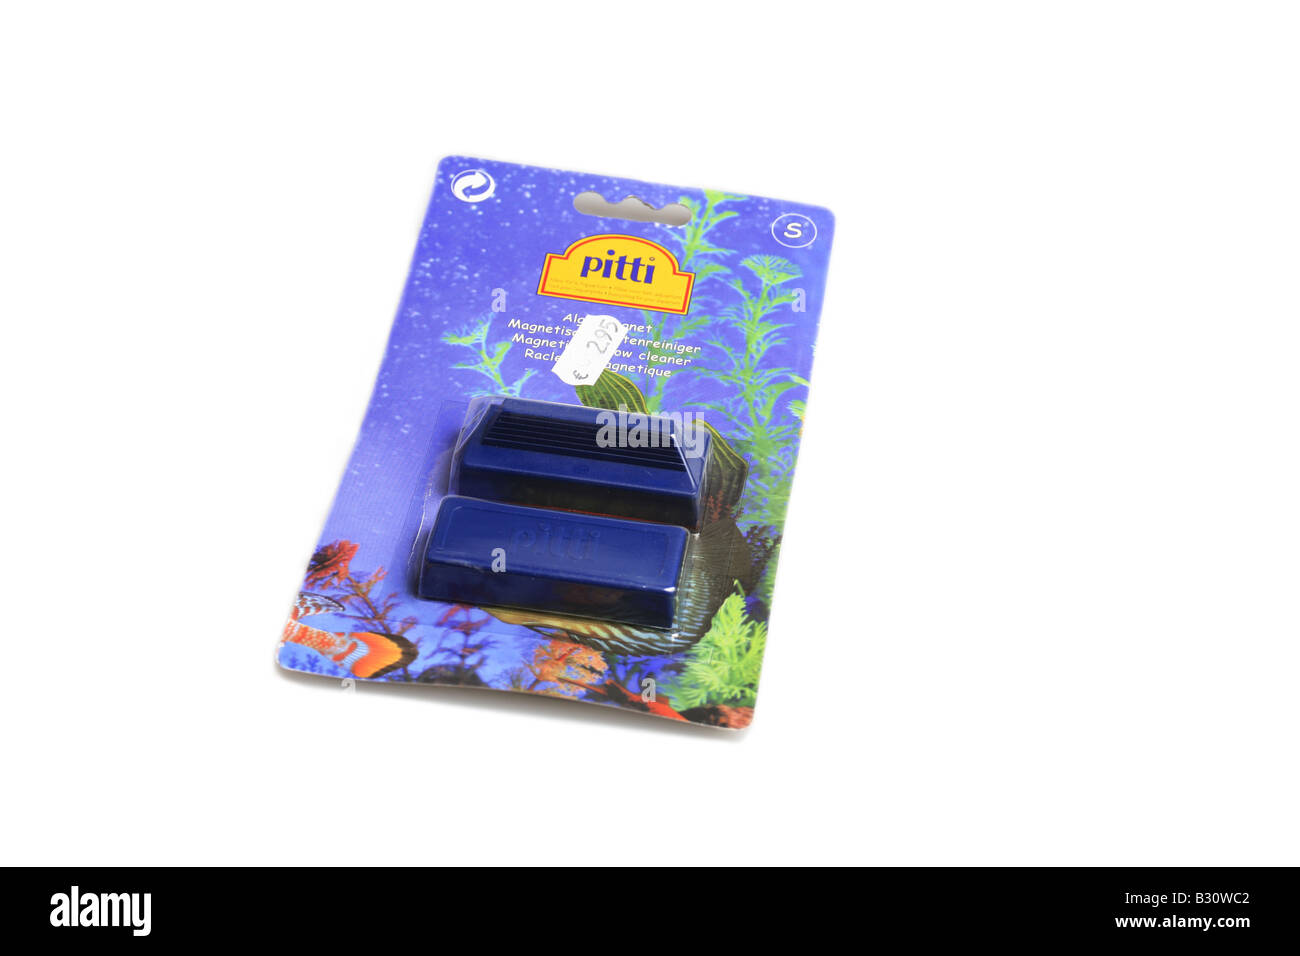 magnet for cleaning fish tank windows Stock Photo